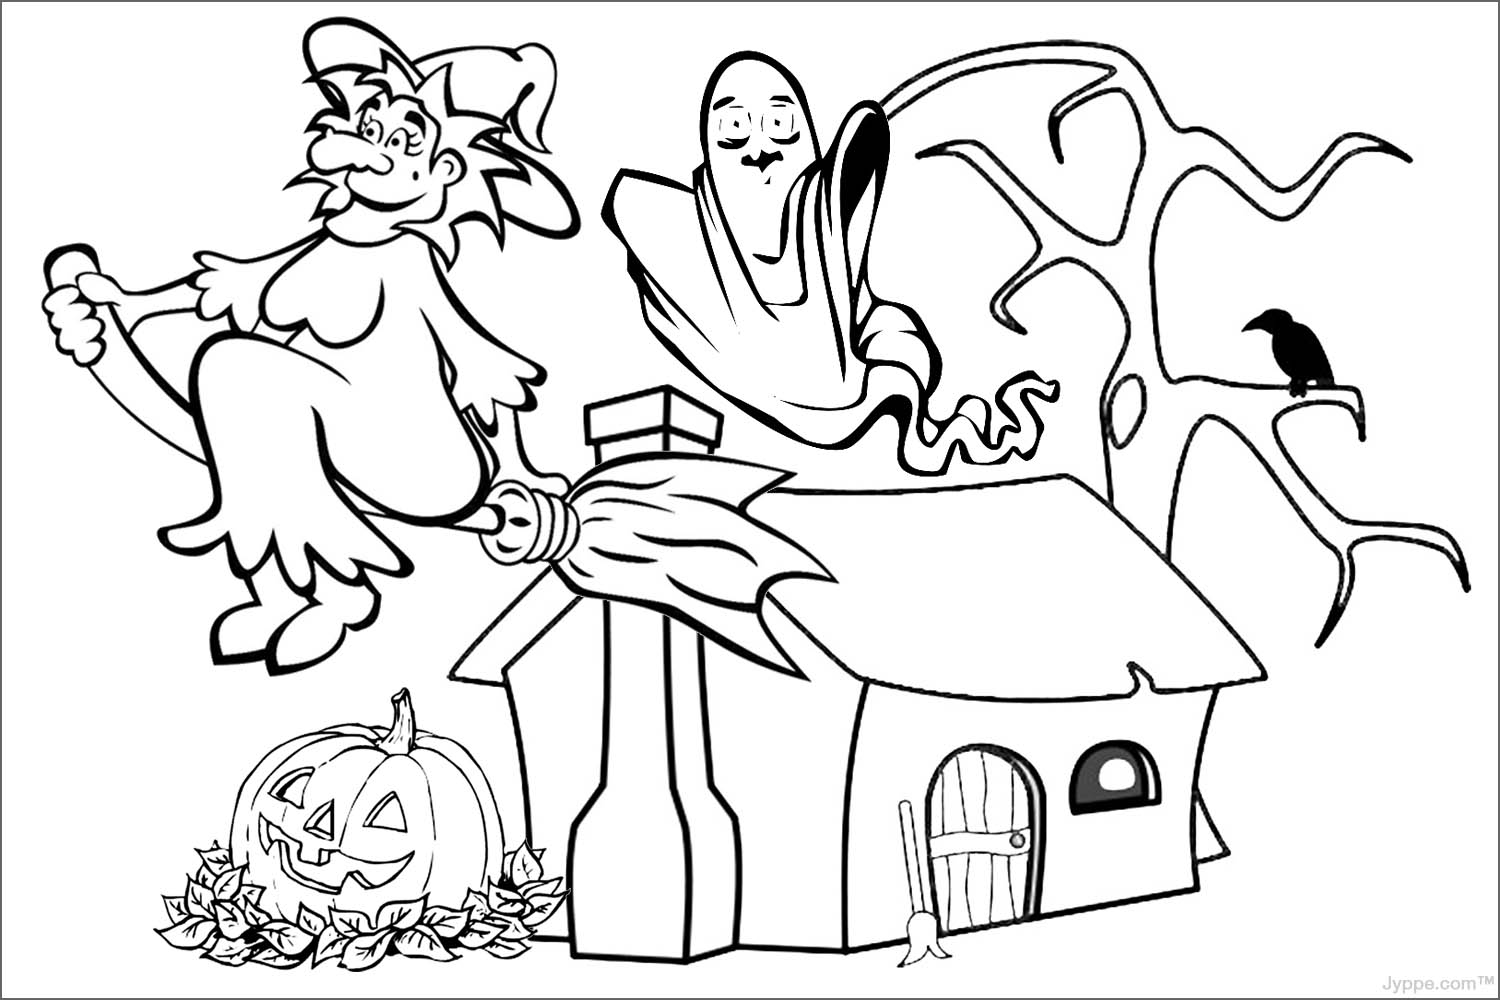 Colouring in halloween - Halloween Images To Color